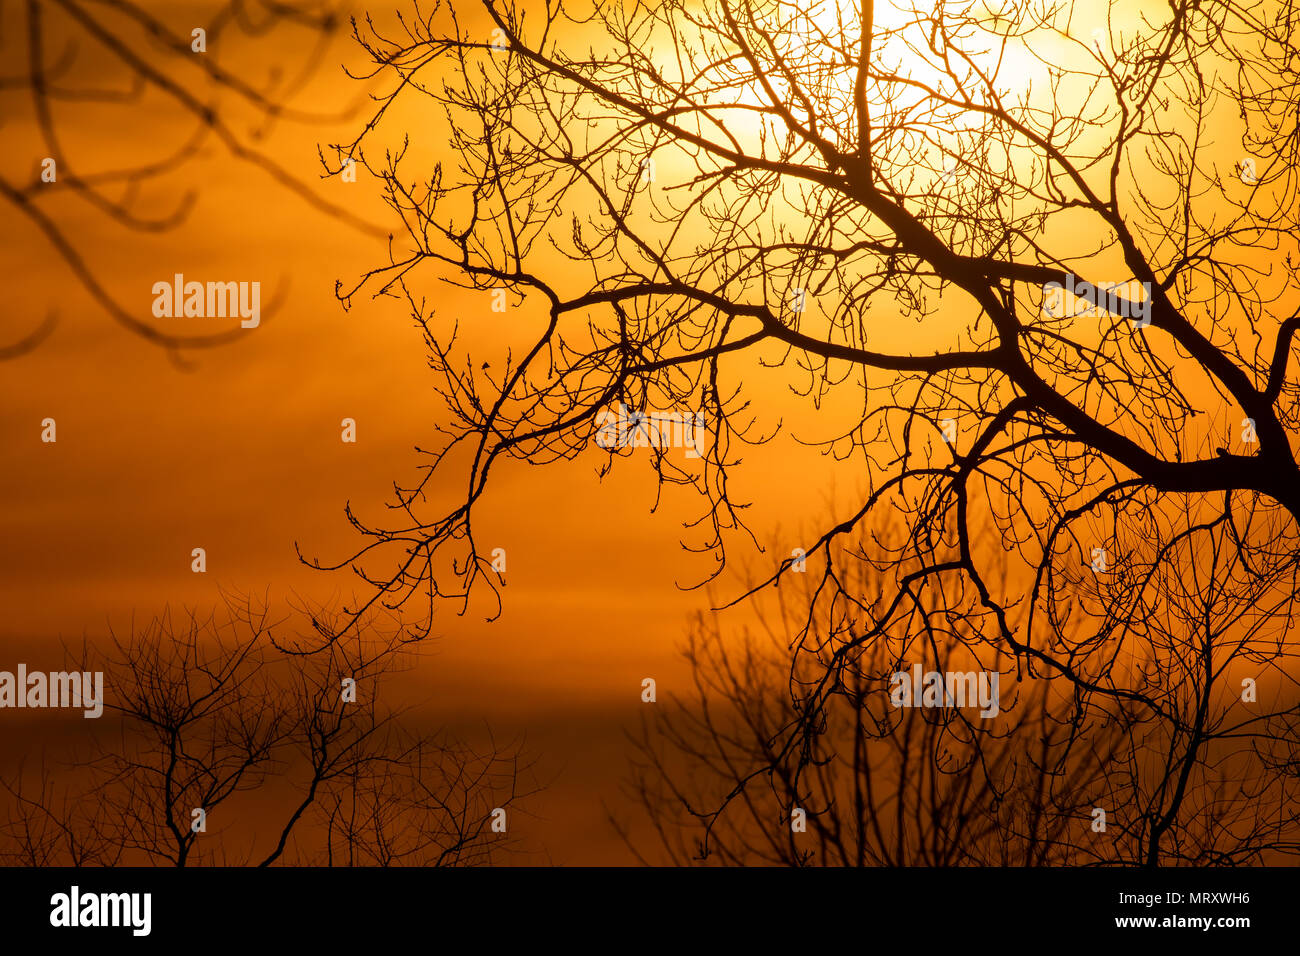 A beautiful sunset in magee marsh wildlife area during a cold winter evening - Stock Image